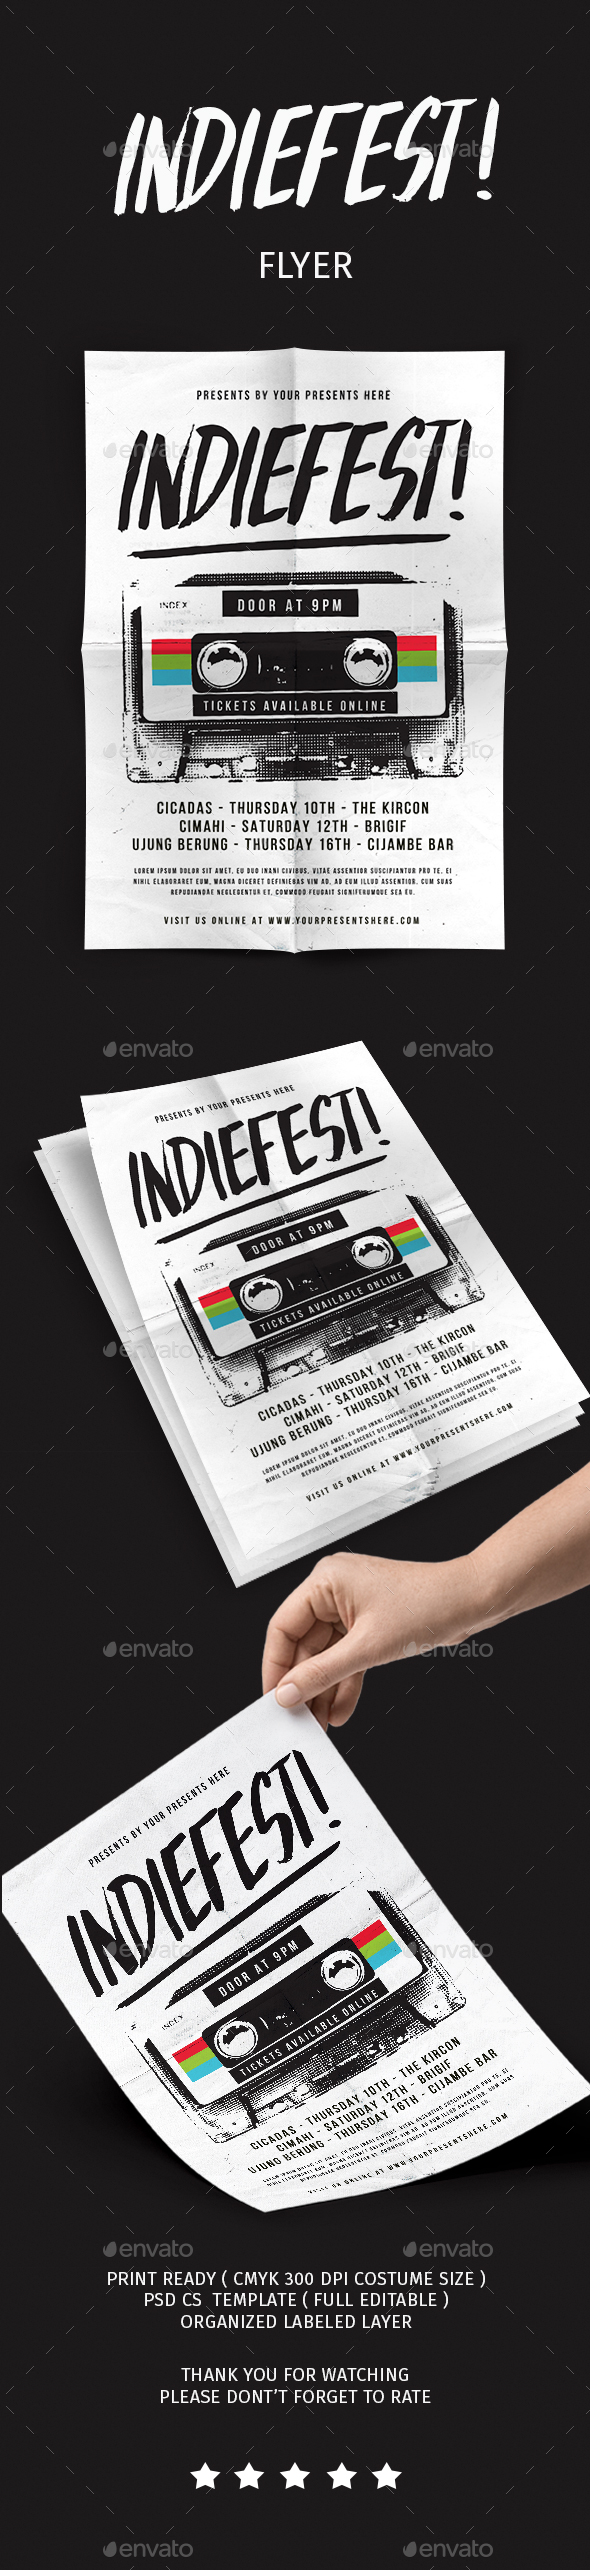 Indiefest Flyer - Events Flyers